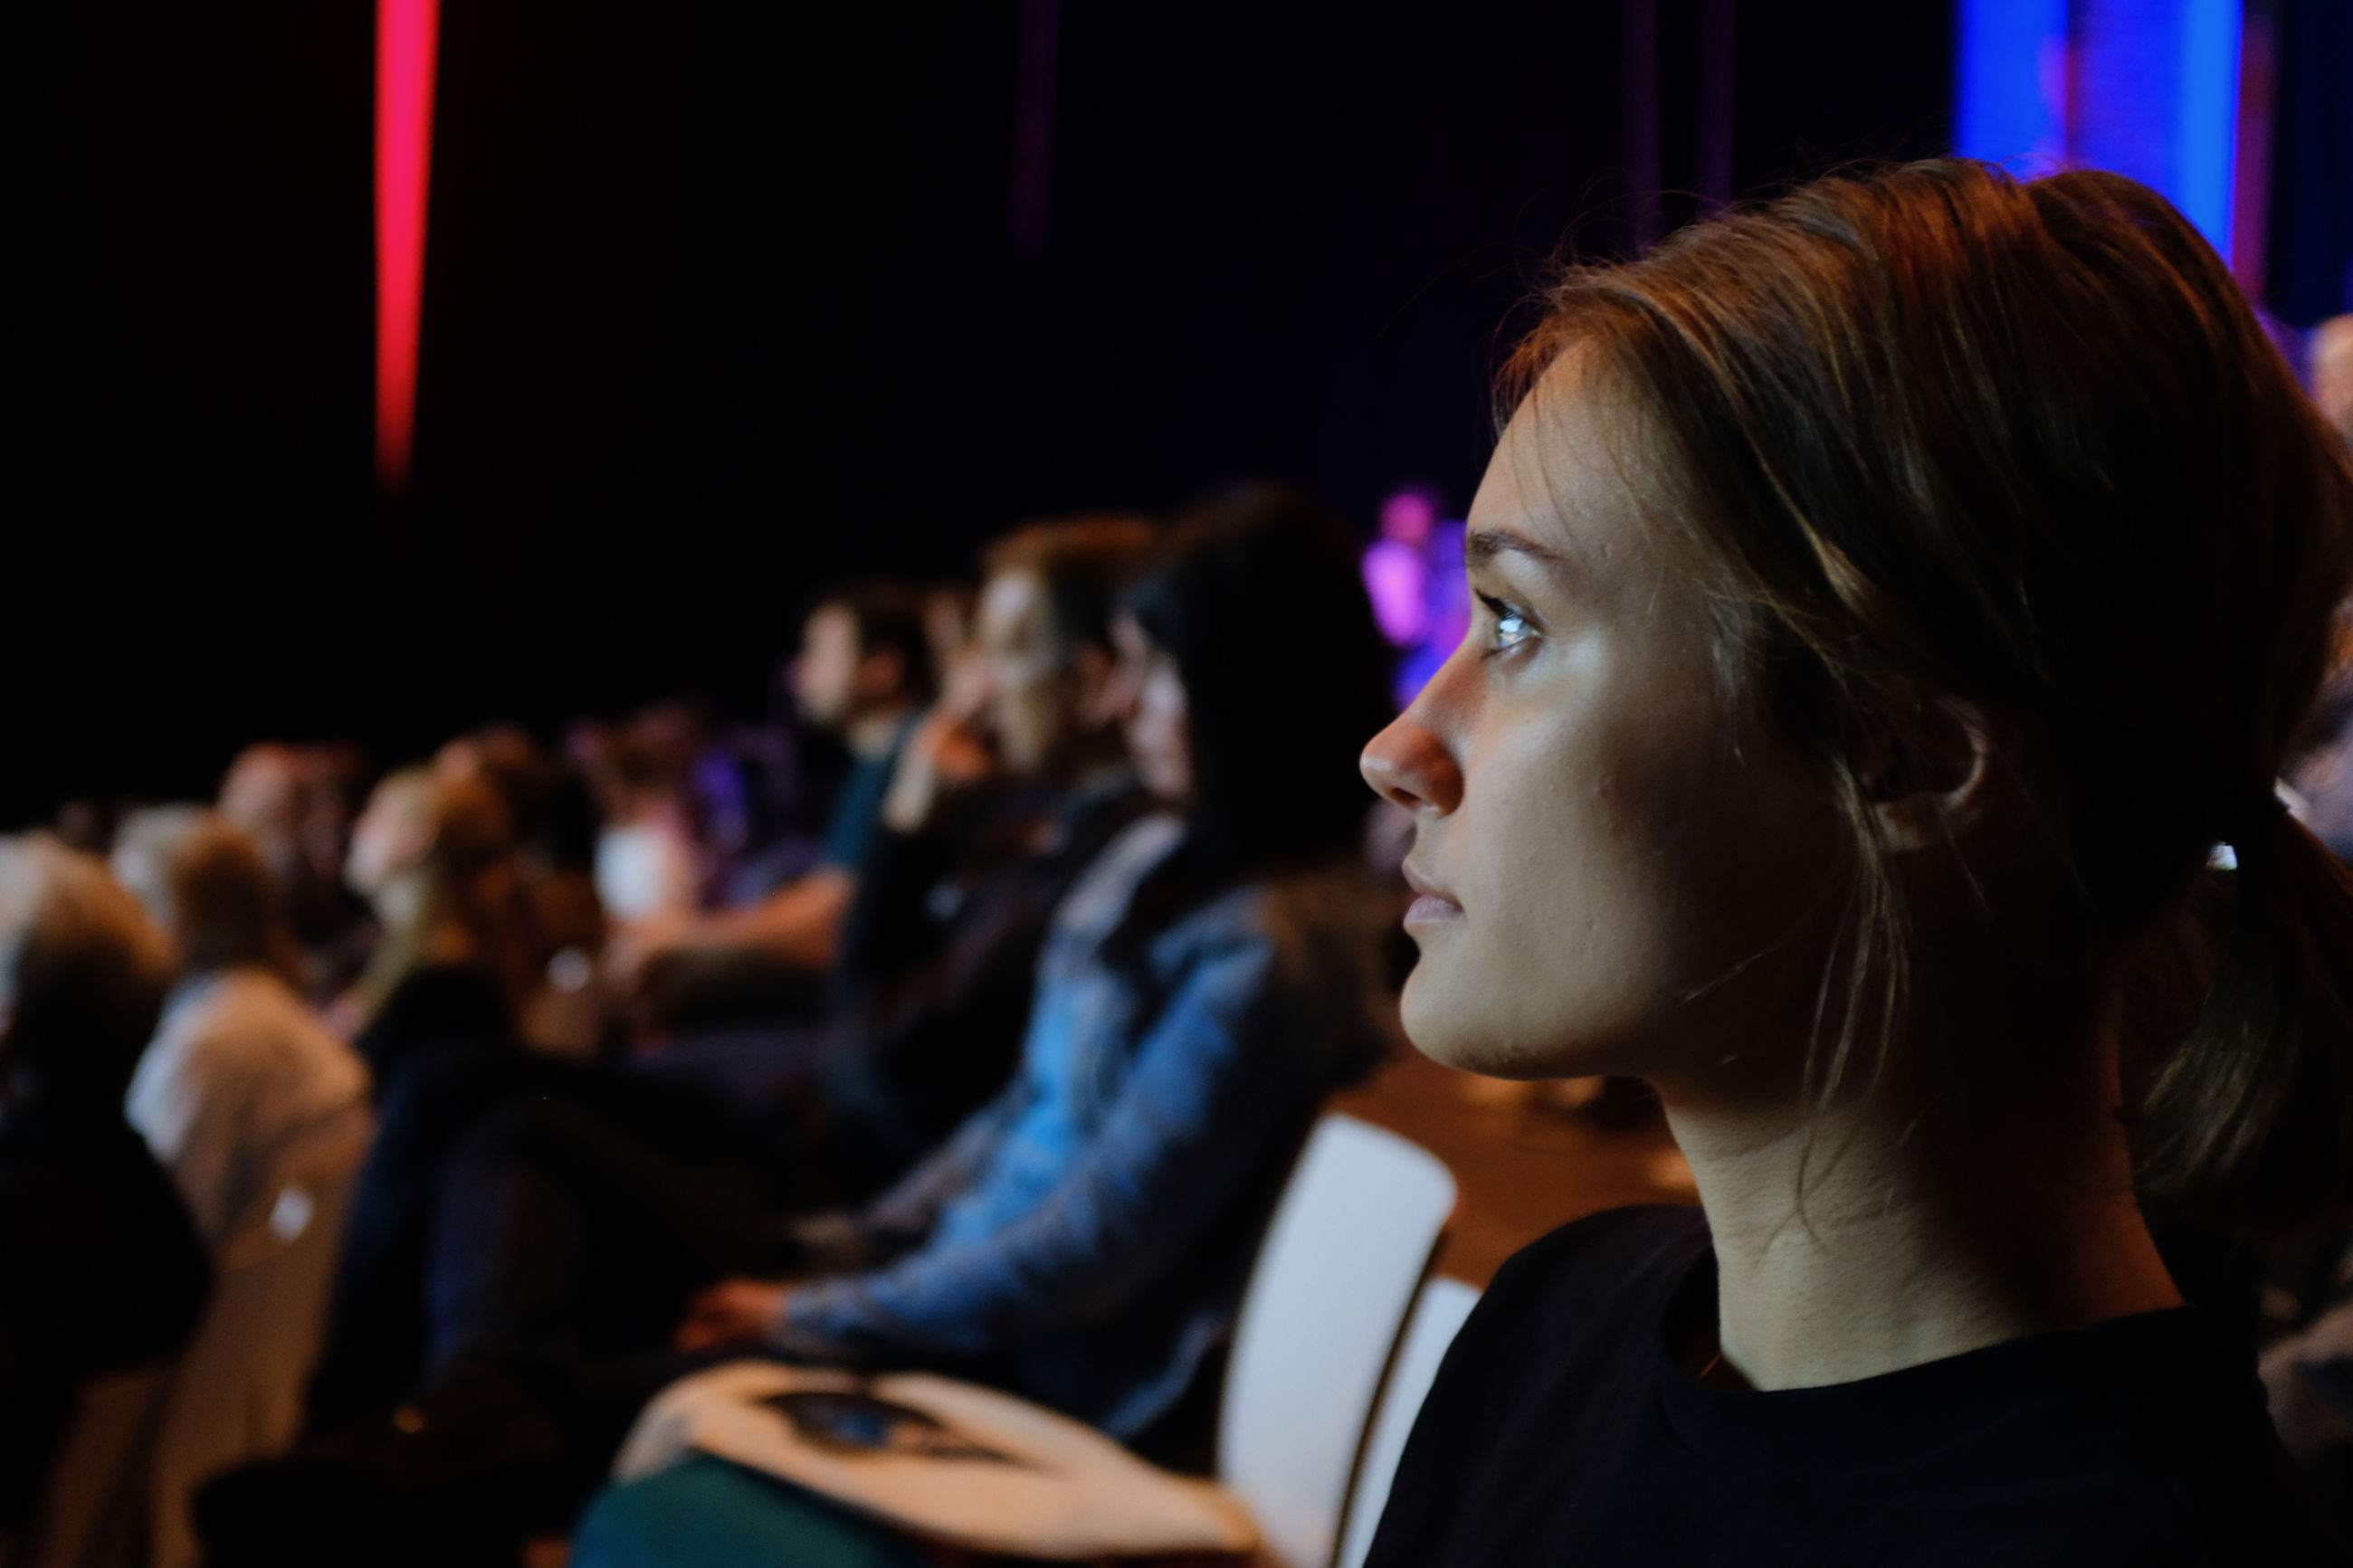 real people, focus on foreground, indoors, young adult, young women, audience, side view, headshot, women, large group of people, sitting, illuminated, close-up, day, adult, people